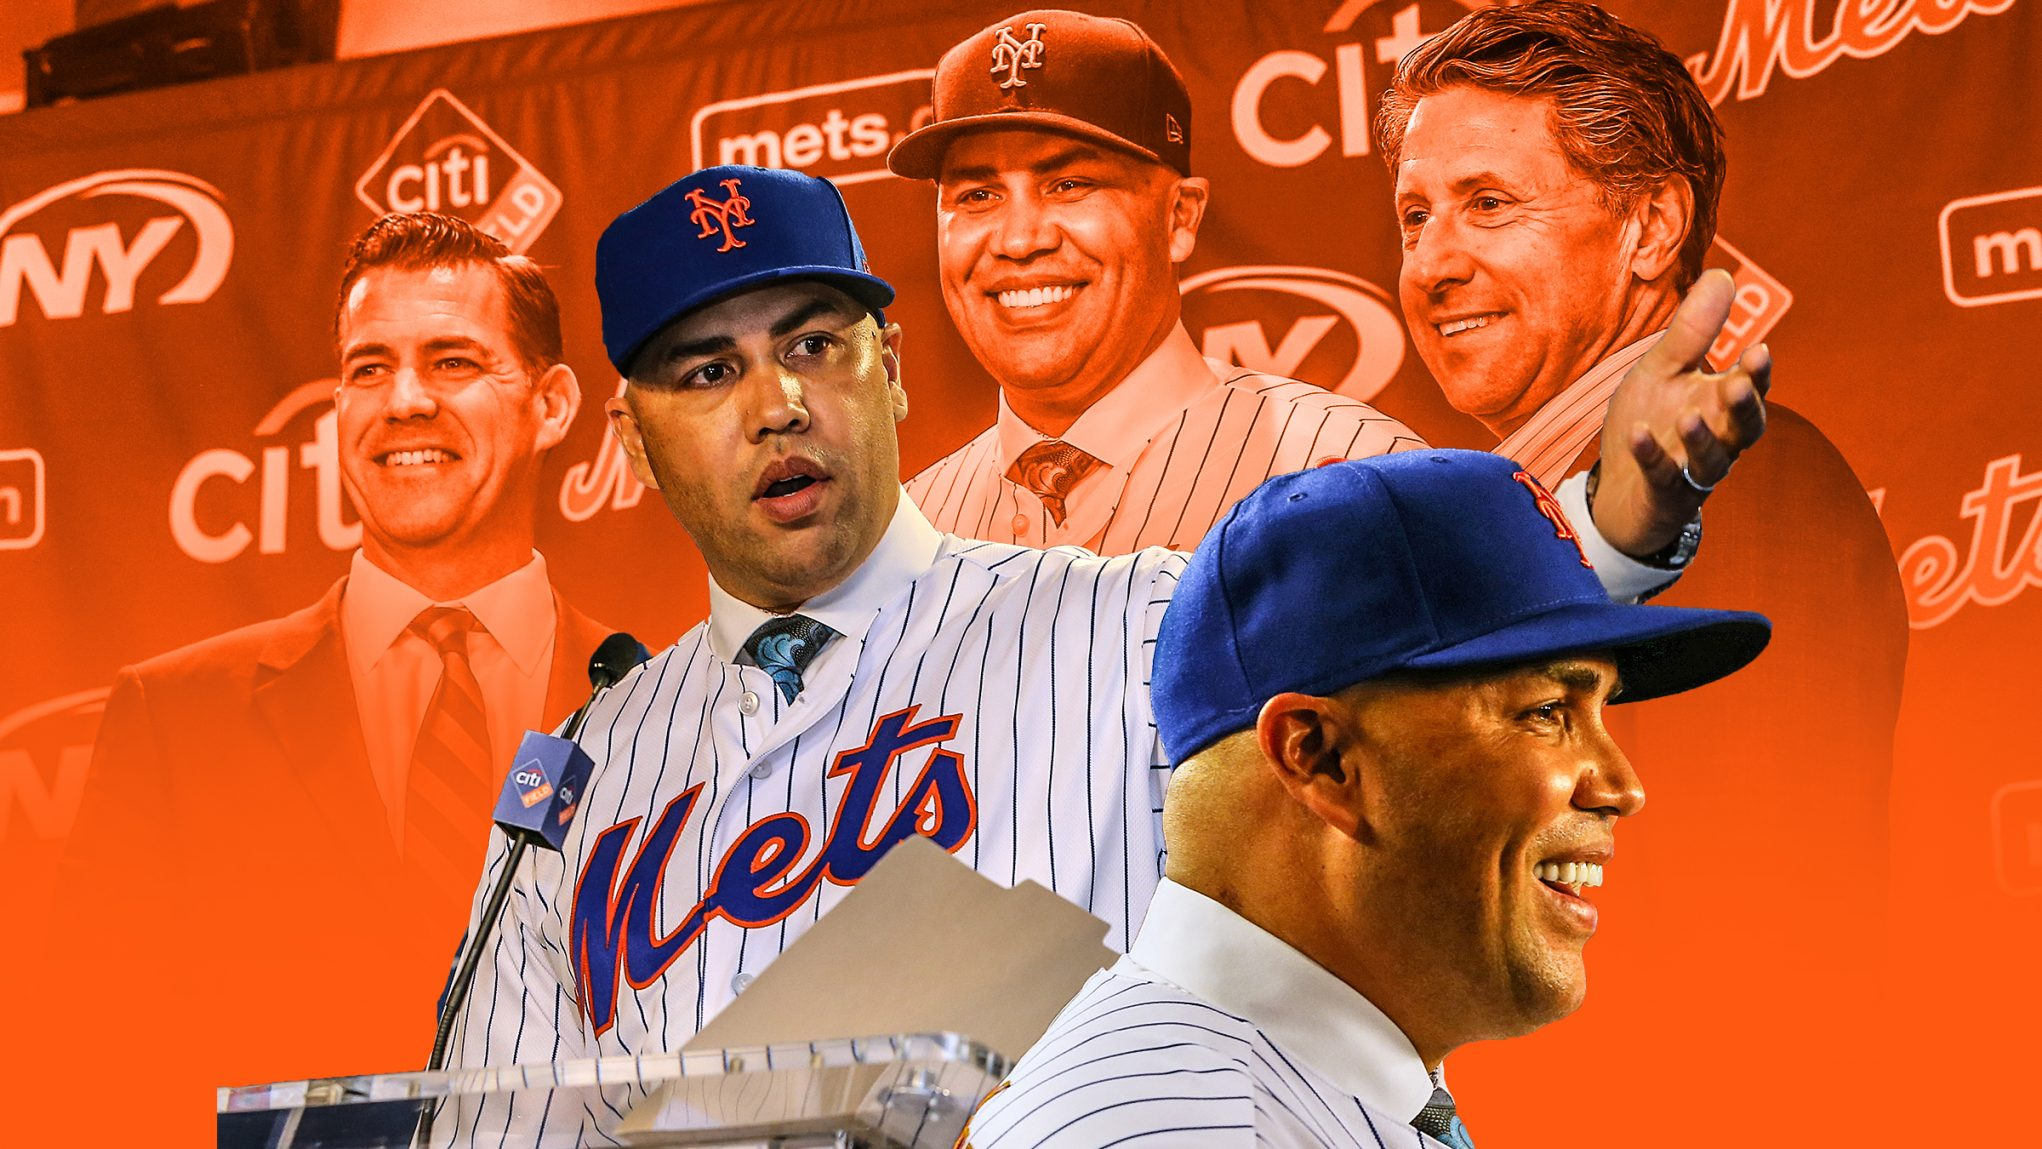 Carlos Beltran >> Carlos Beltran Is The Right Man At The Right Time For This